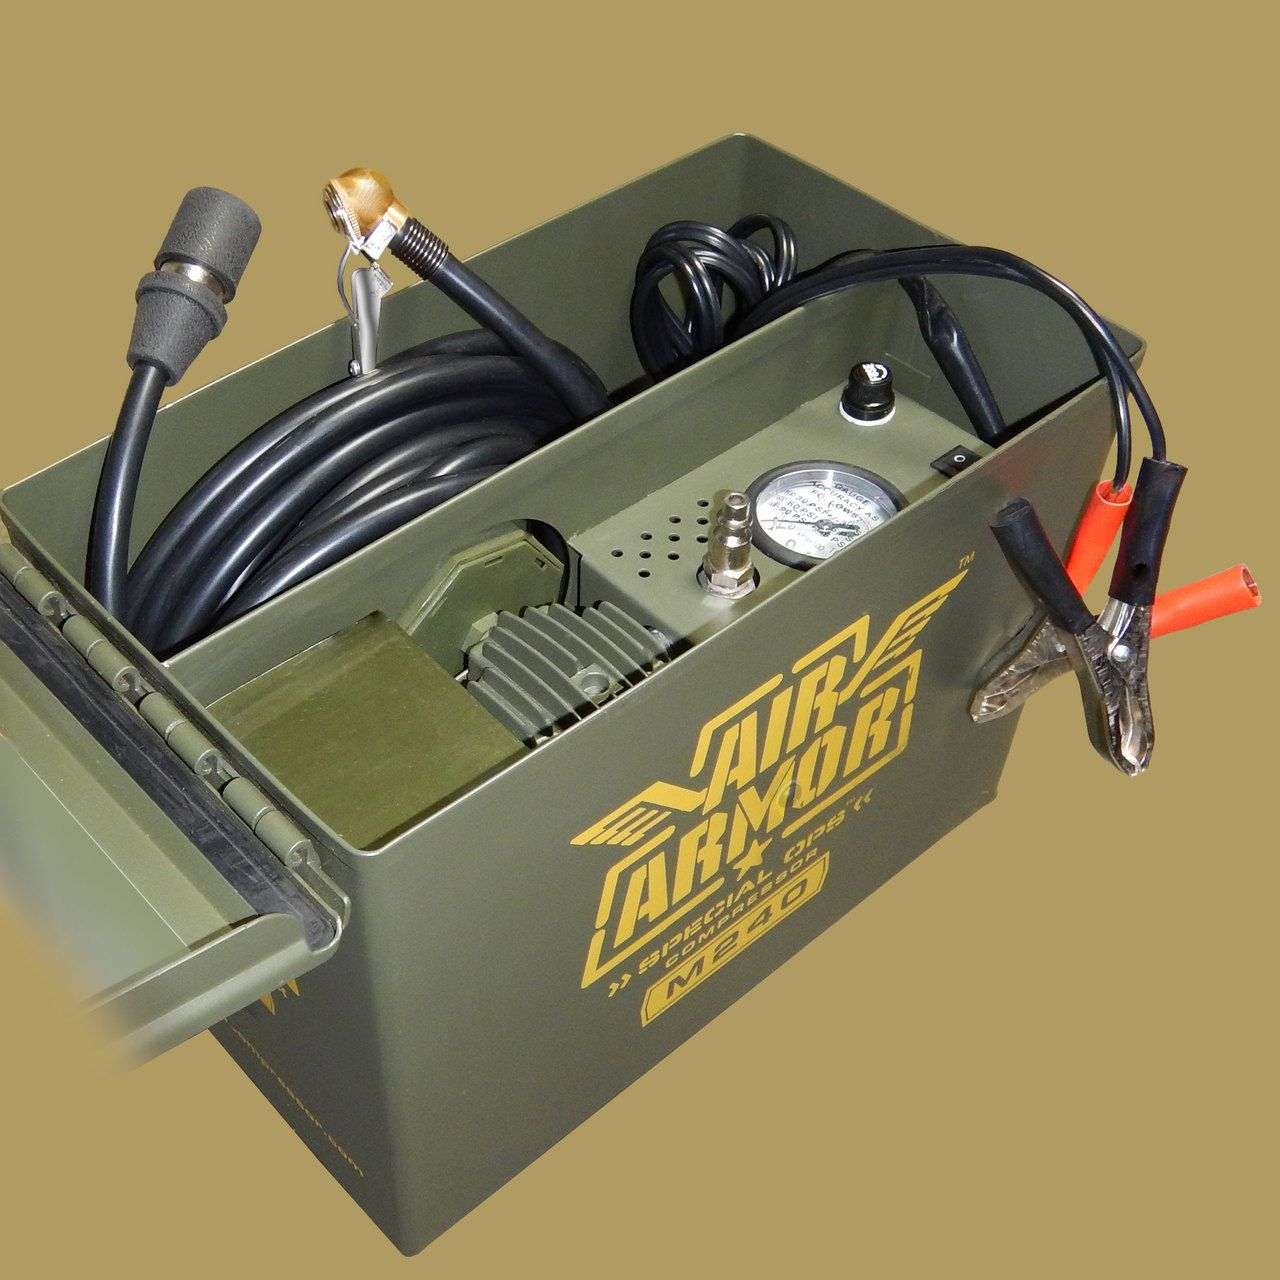 Tire Inflator Air Armor M240 Ford trucks, Ammo cans, Trucks